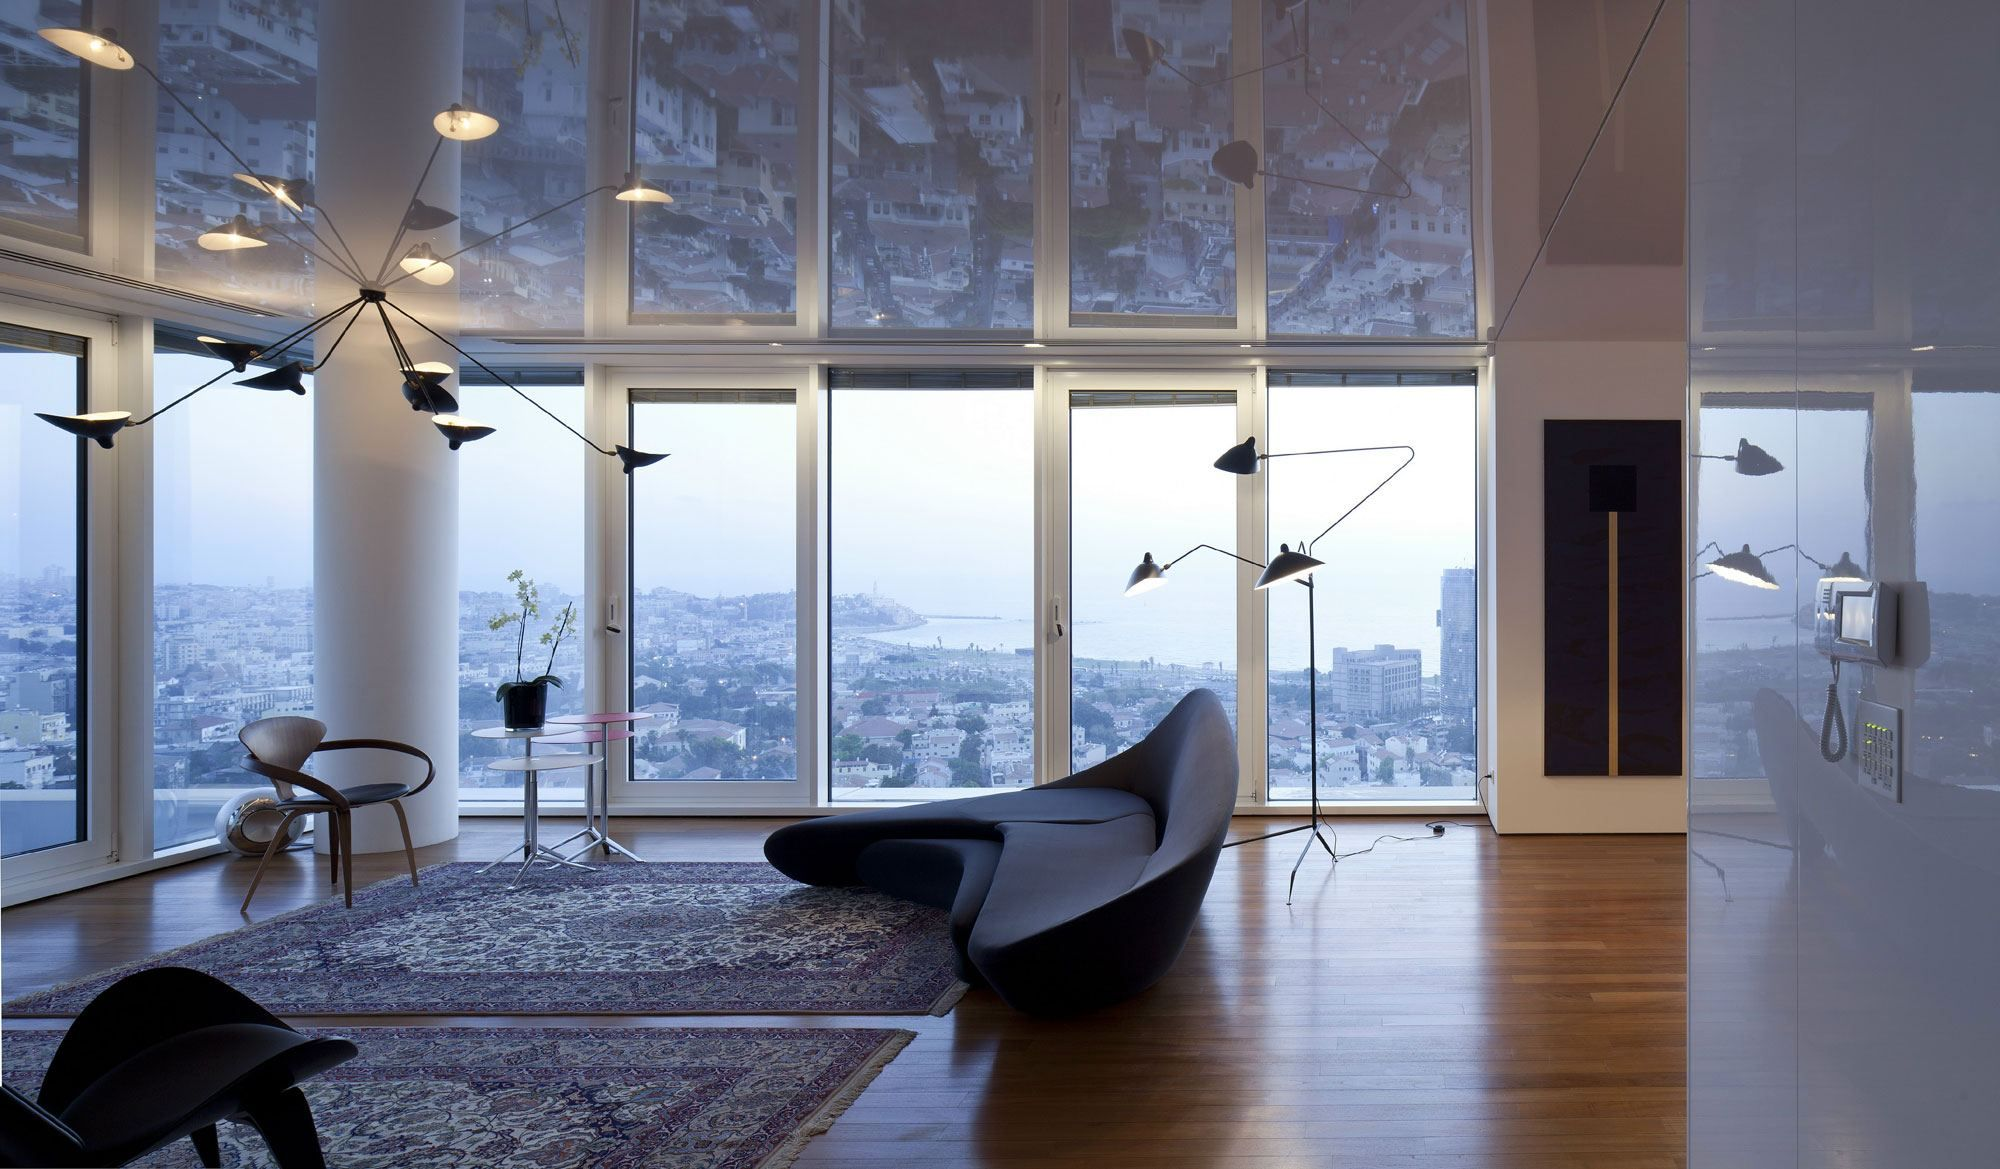 10 city apartments that take skyline views to new heights   Interior ...